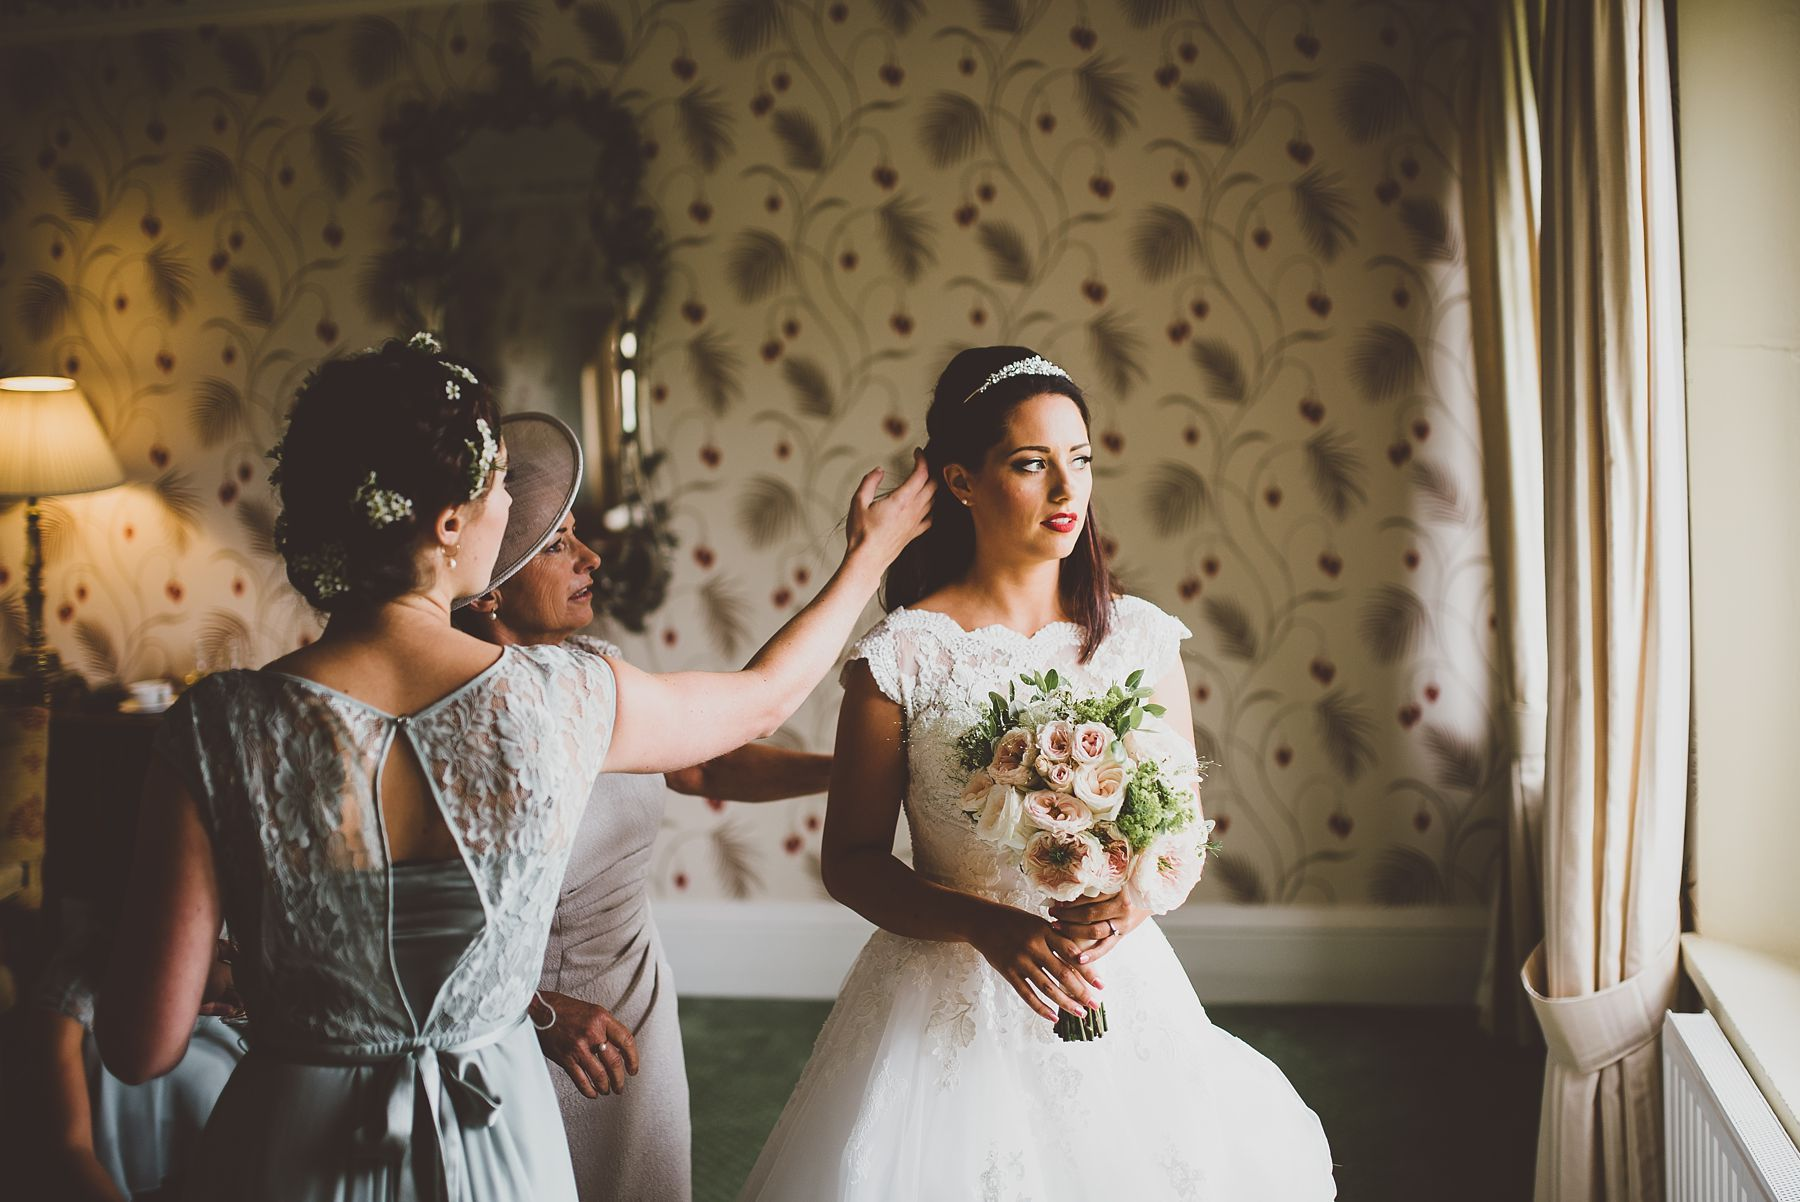 Check Out This Eastwell Manor Wedding From Scarlets Gorgeous Dress To The Amazing Backdrop That Is Was One Very